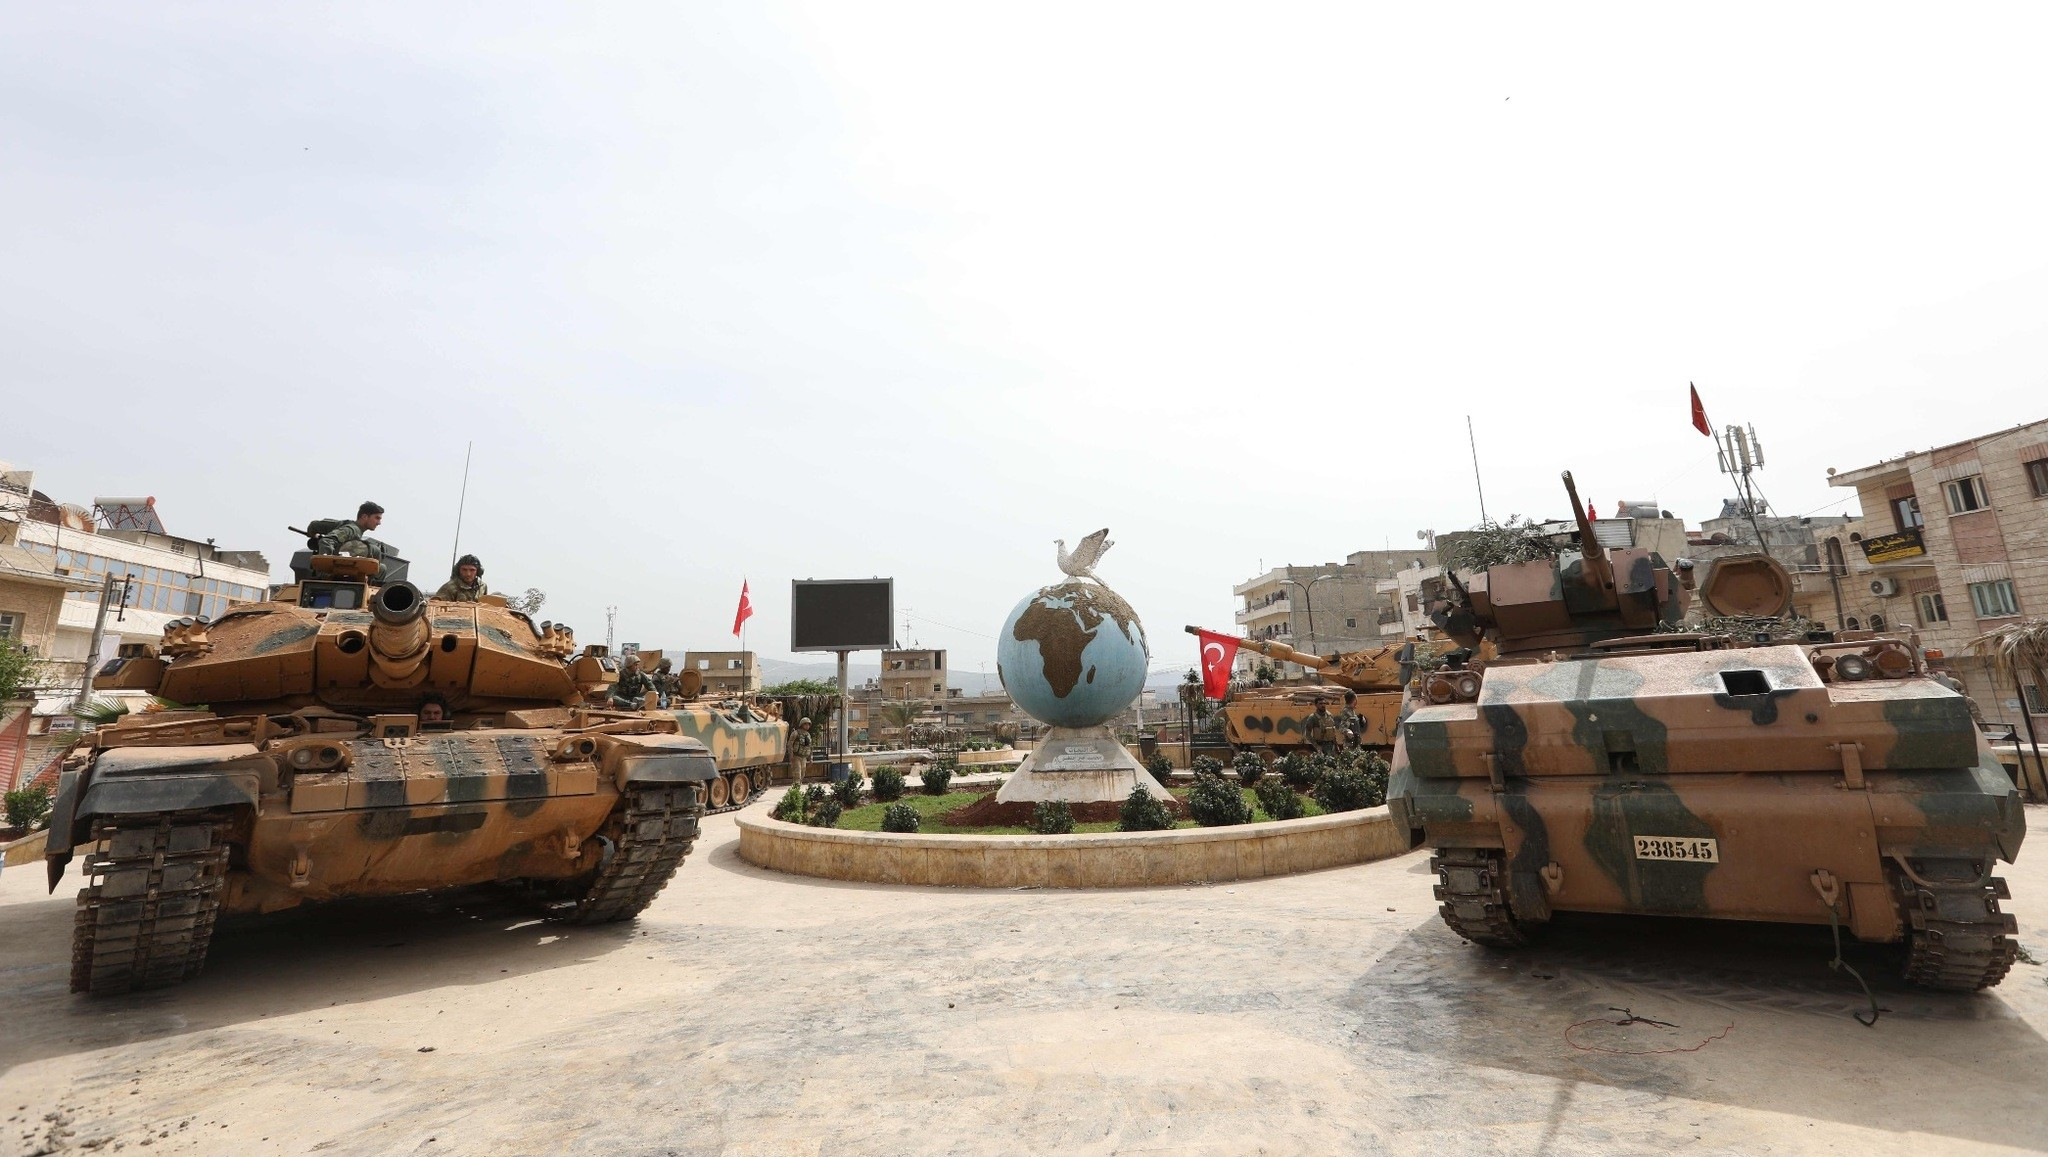 Turkish soldiers gather in the city of Afrin in northwestern Syria after liberating it from the PKK-affiliated terrorist group, the YPG, March 18. (AFP Photo)